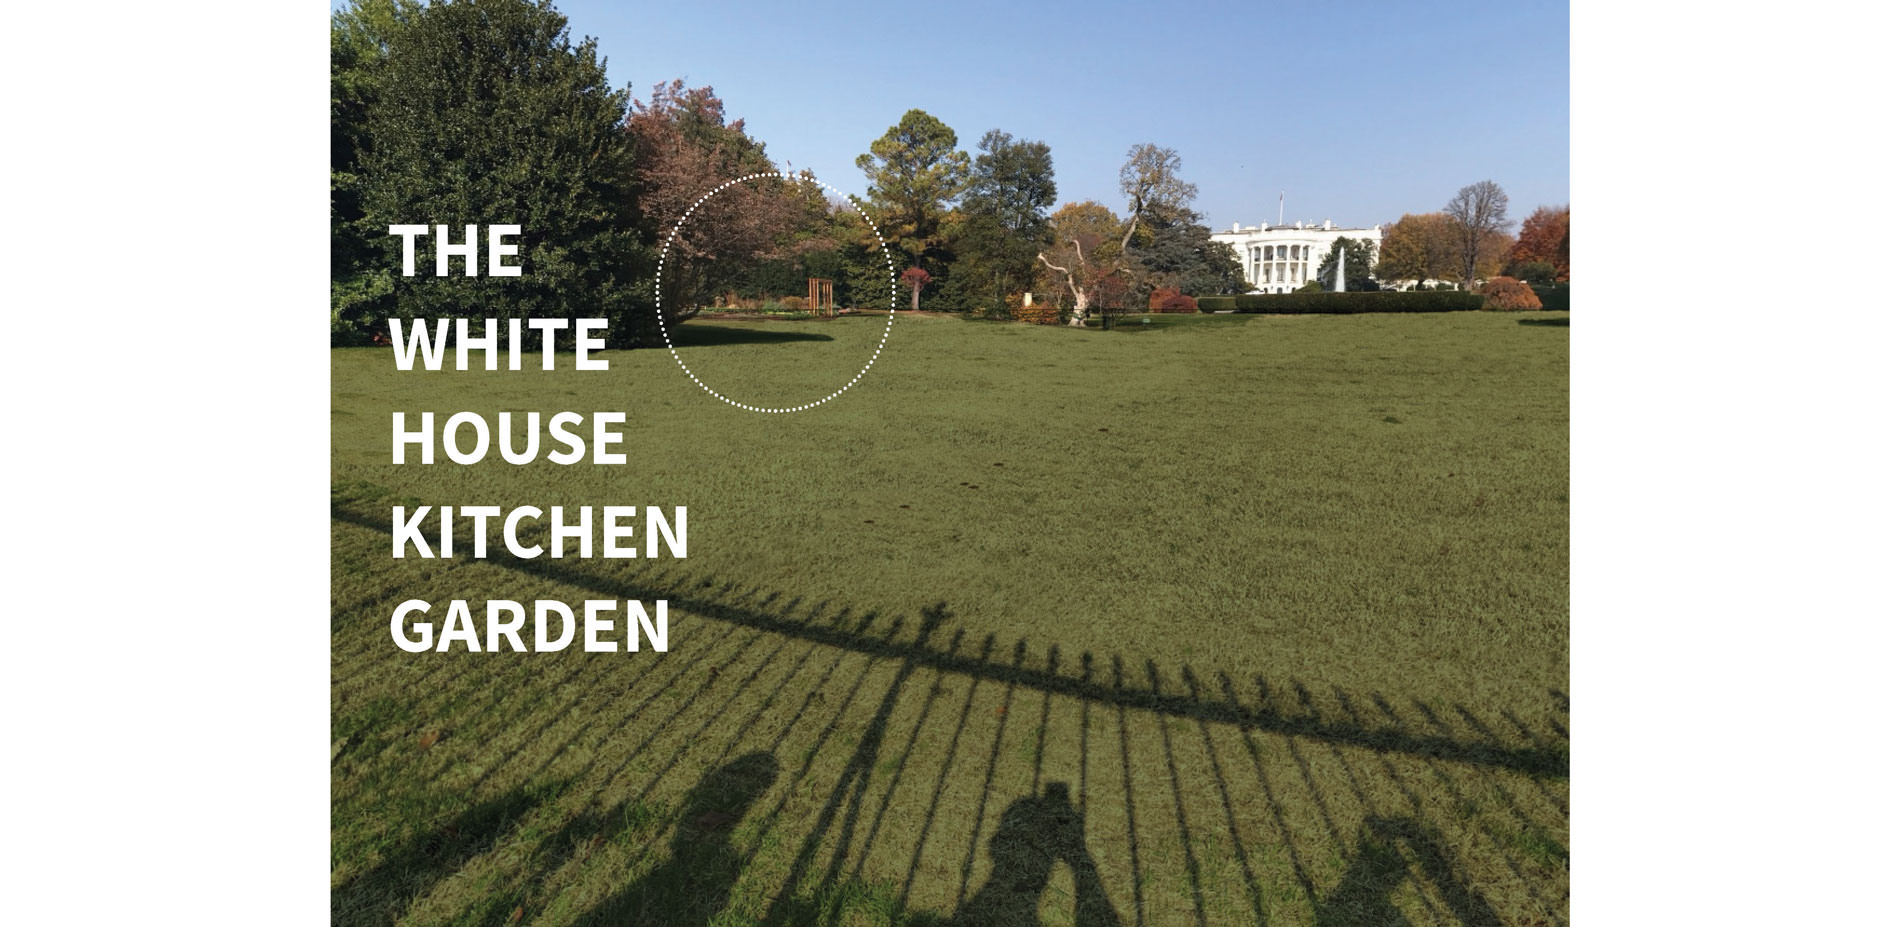 The White House Kitchen Garden | 2017 ASLA Student Awards